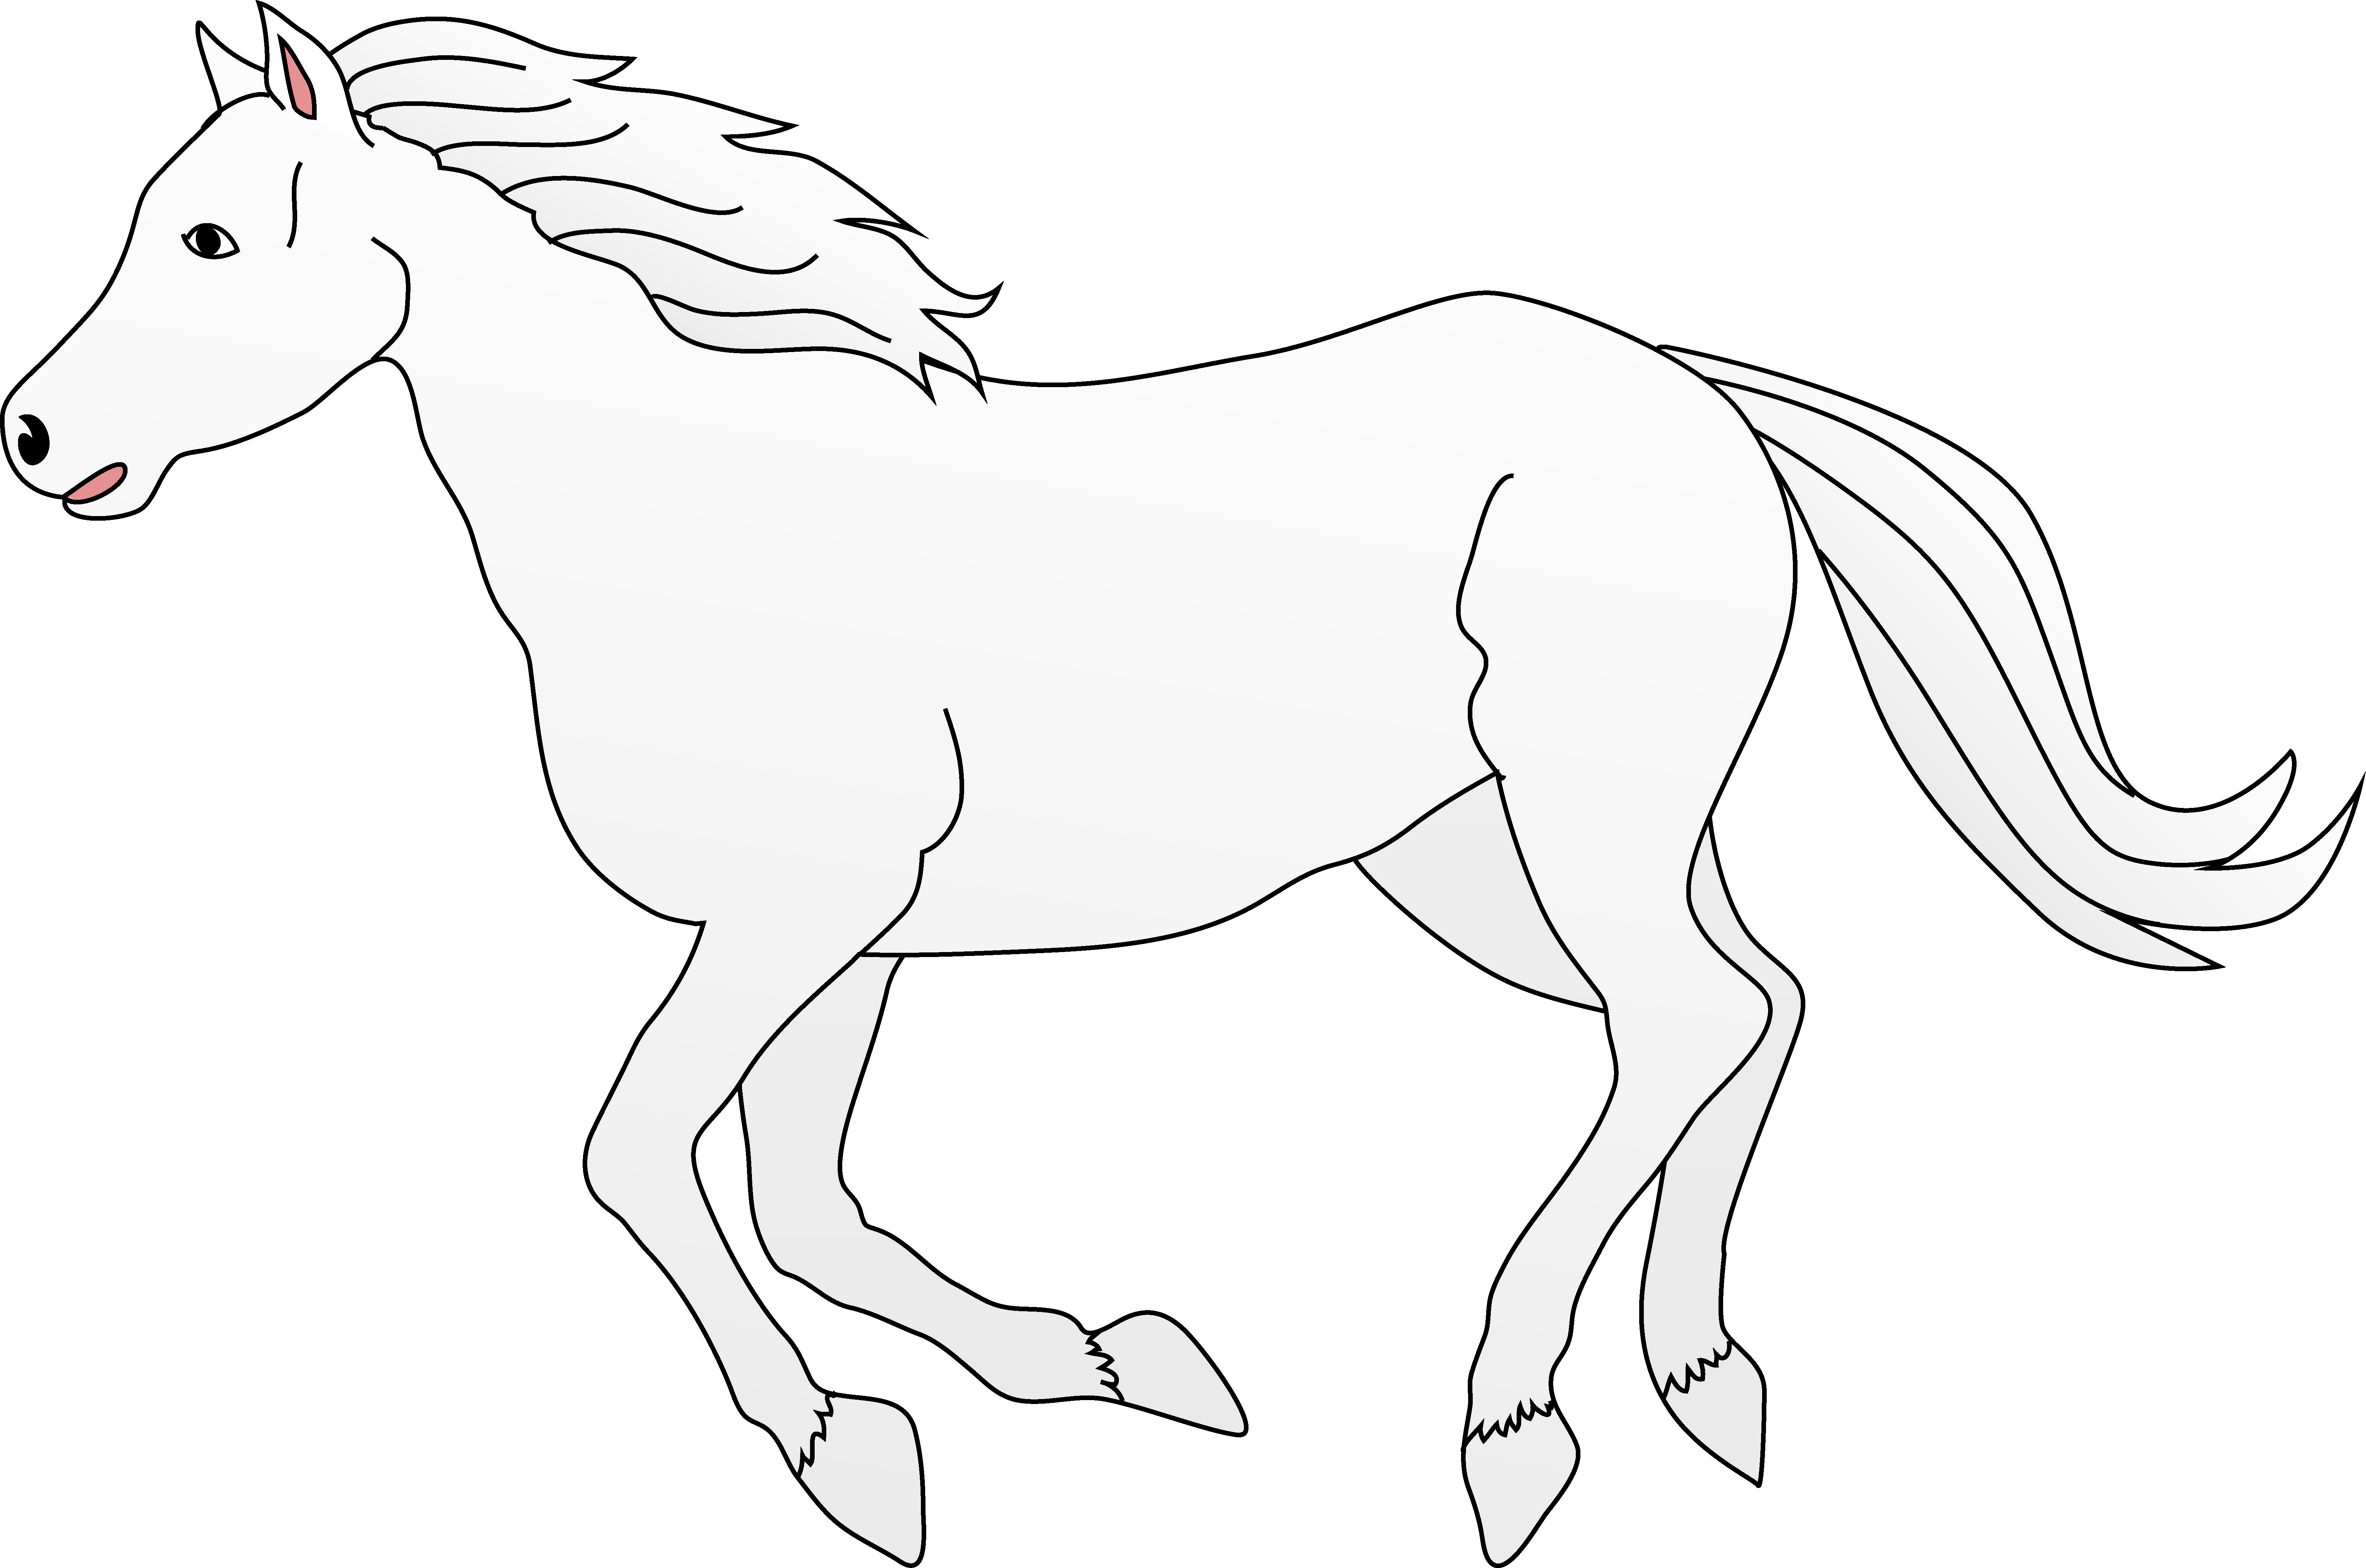 Horses clipart food. White horse galloping clip